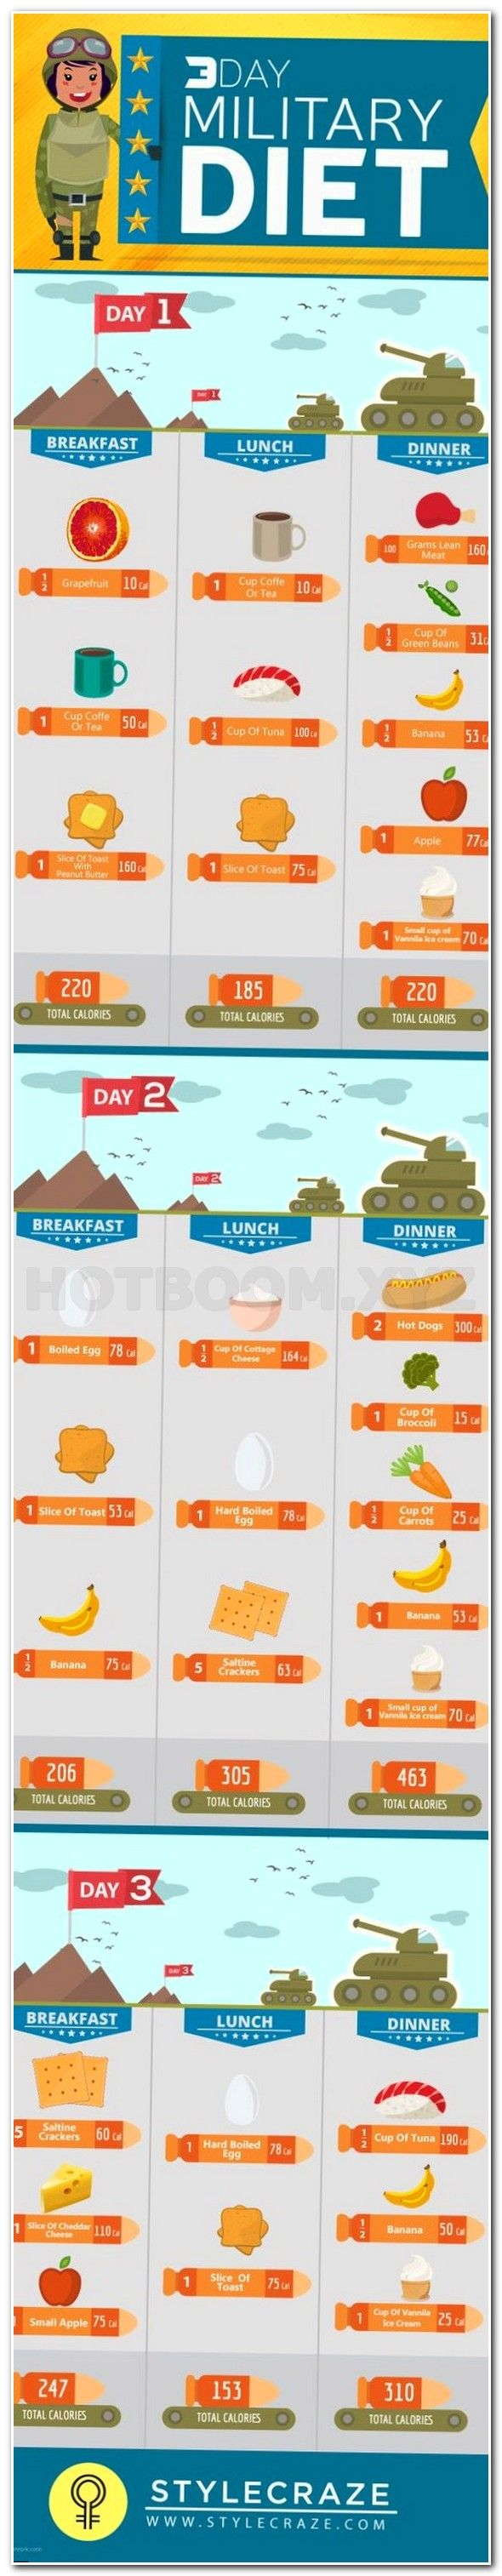 How lose weight fast in 3 days photo 5